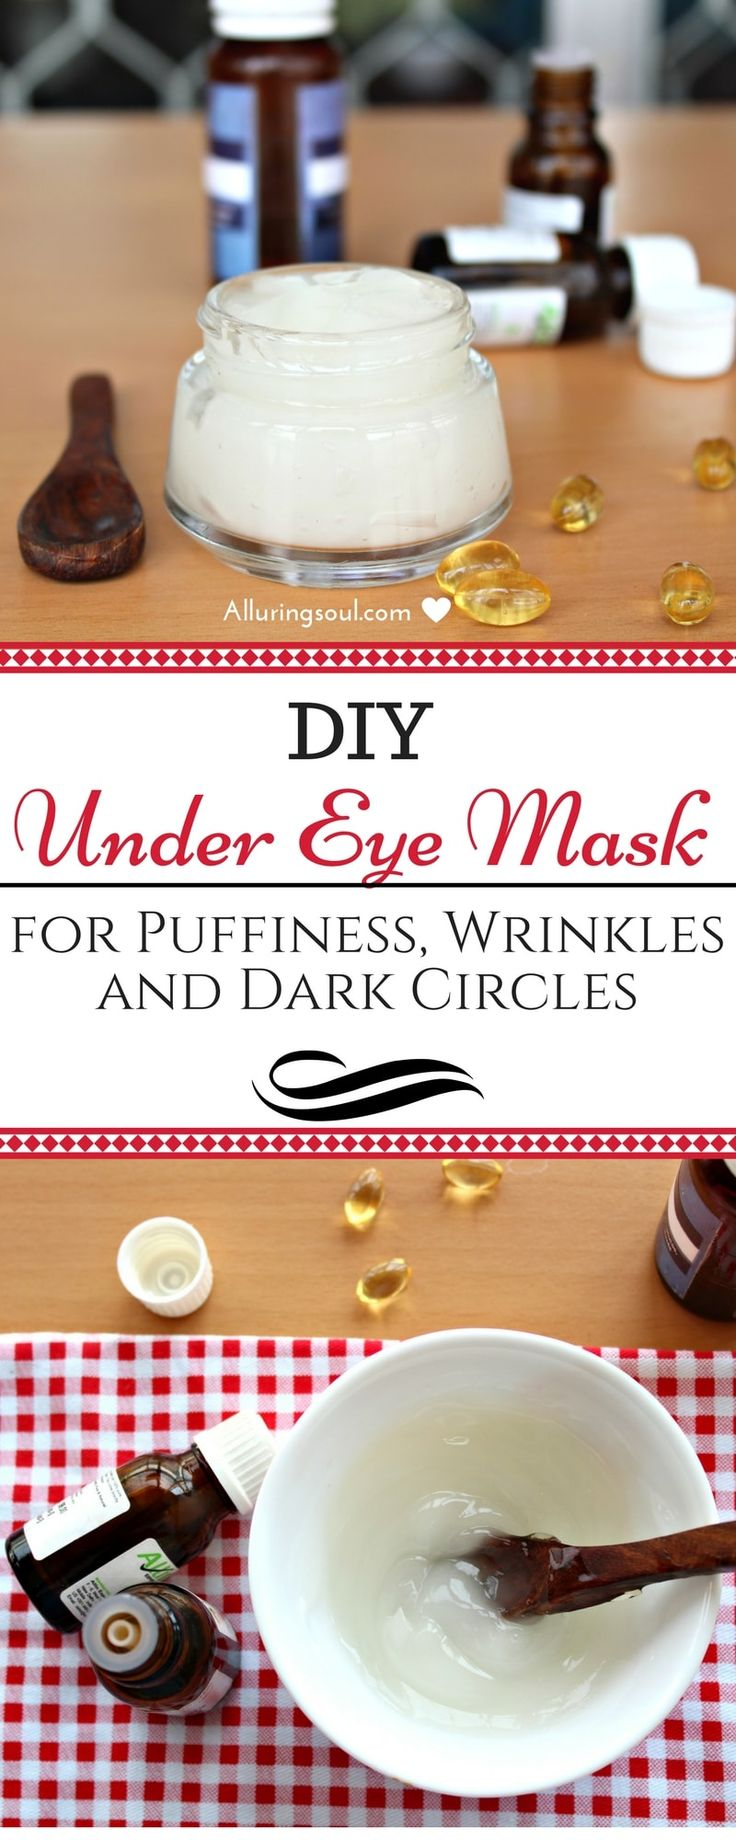 Nourish and rejuvenate your eyes with this powerful under eye mask that removes puffy eyes, wrinkles and dark circles, which is made of powerful ingredients.